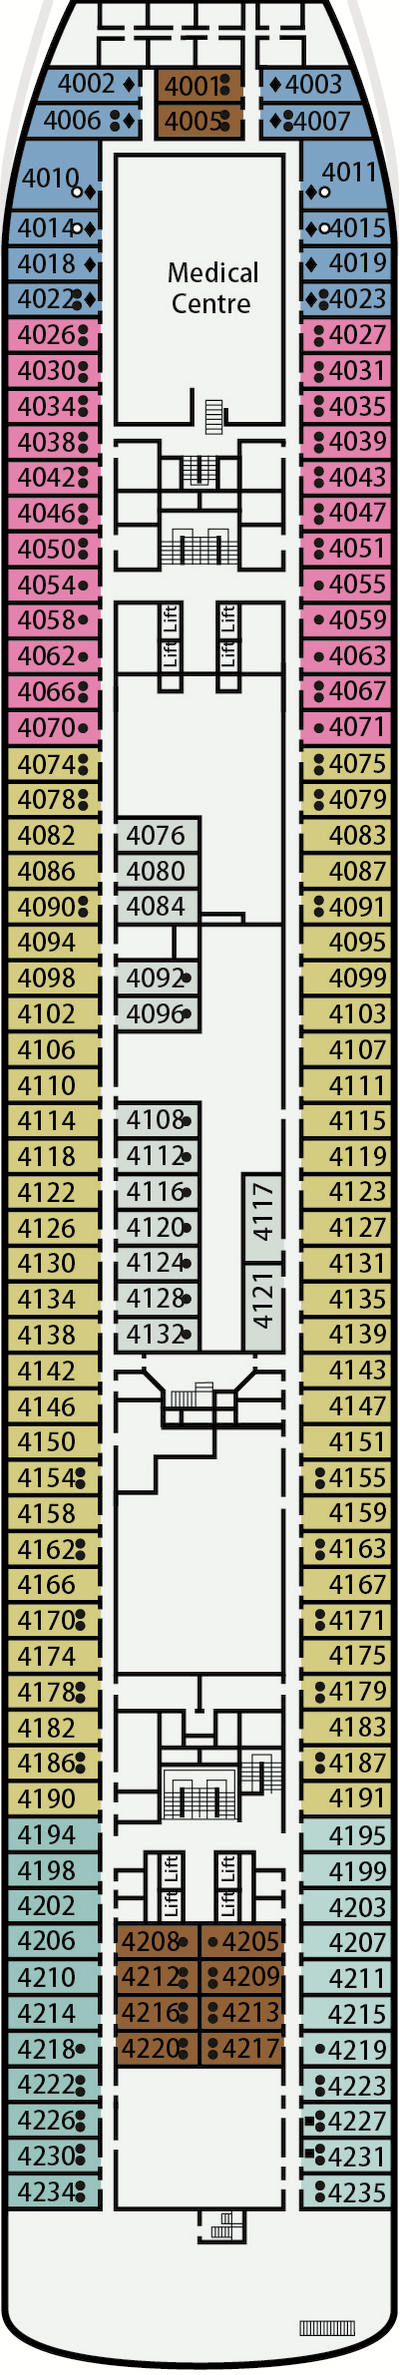 P&O - Pacific Aria Deck 4 layout